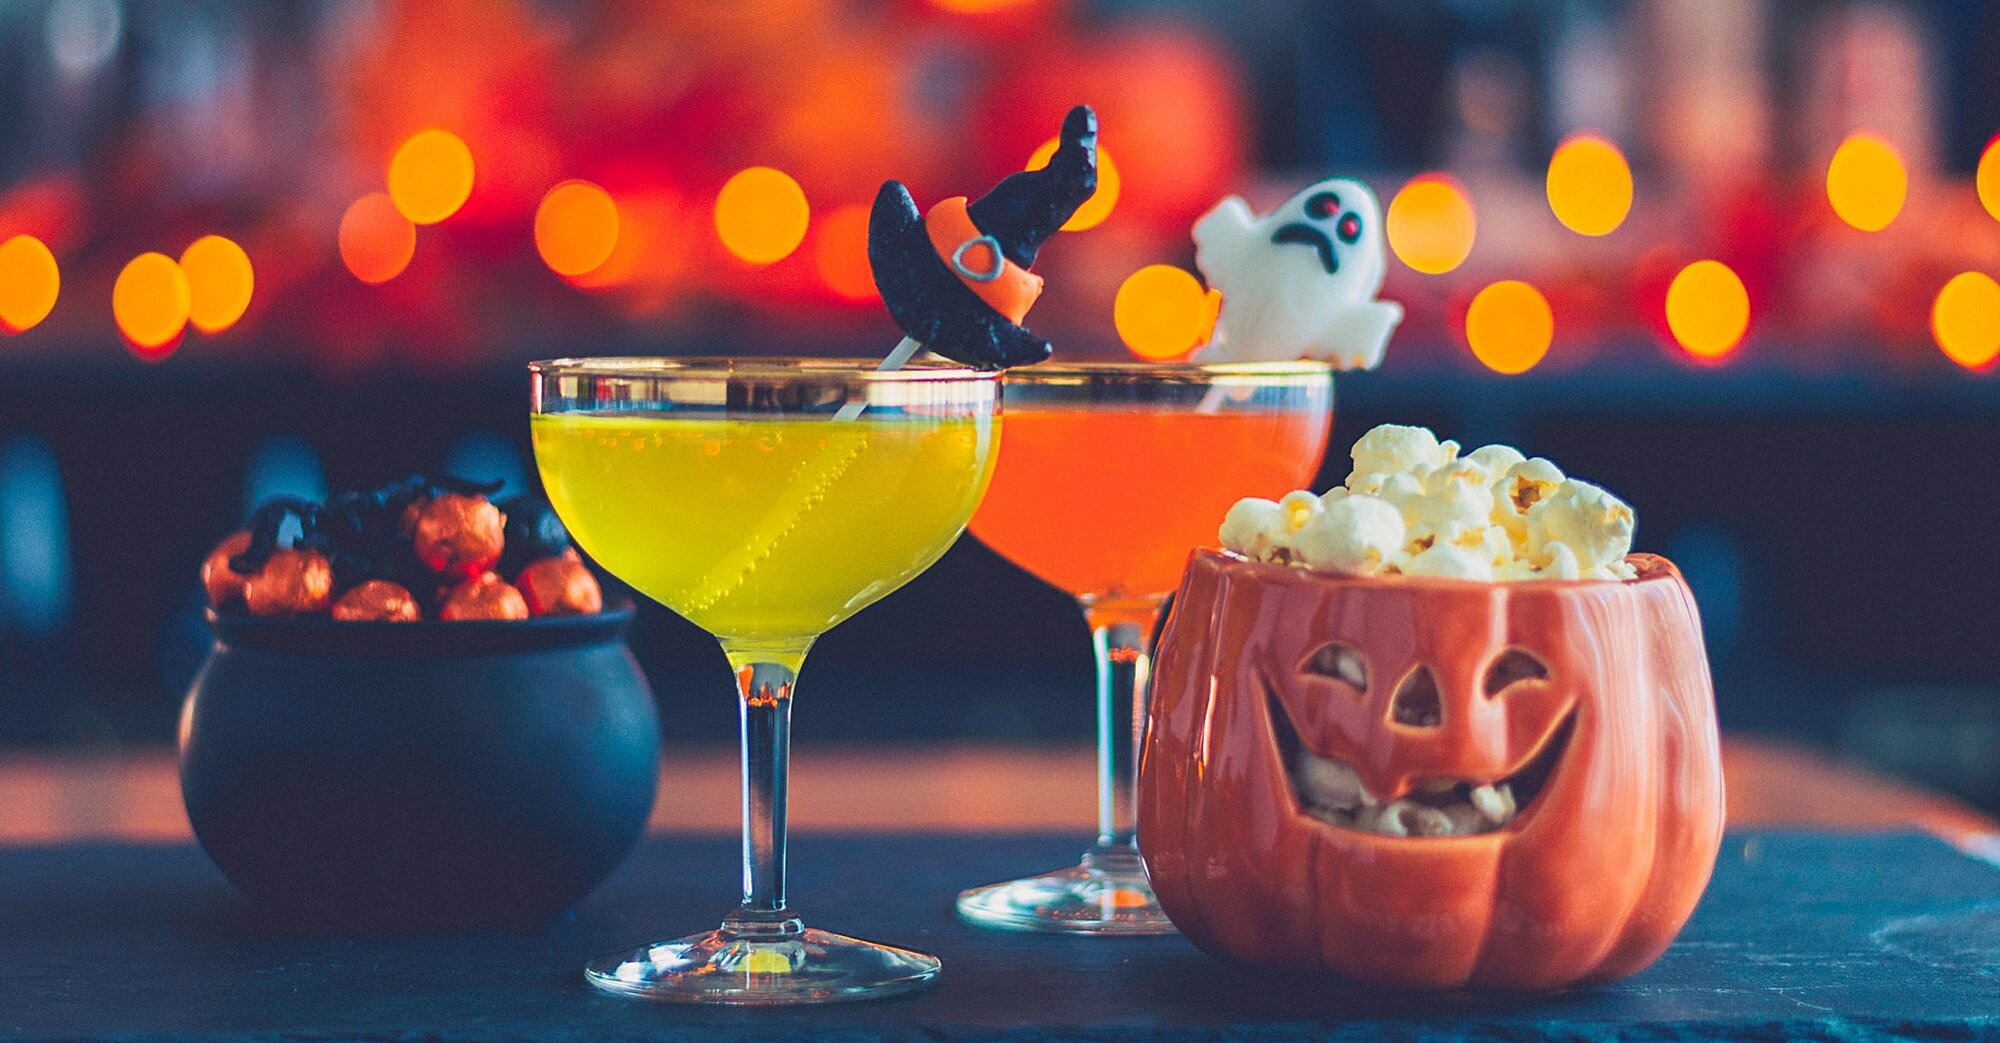 Pair Up Beloved Halloween Movies and Classic Candies With Our Handy Guide